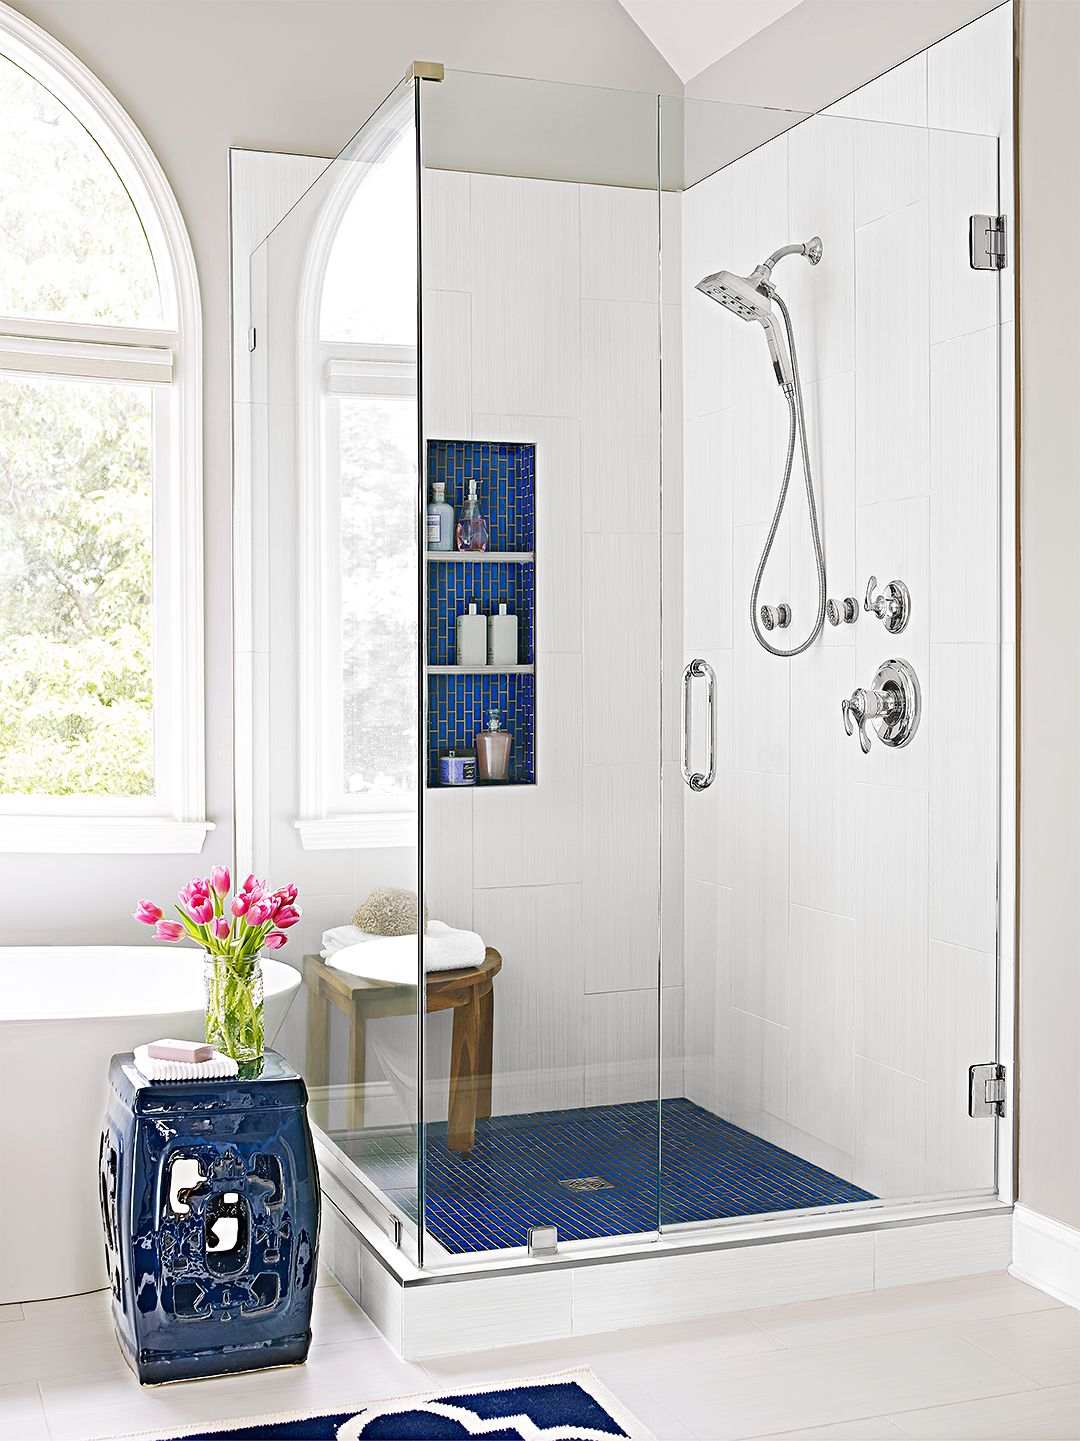 Es Even A Smaller Bathroom Can Have A Separate Tub And Shower Bathroomdesign Walkinshower Bhg Small Bathroom With Shower Shower Floor Small Bathroom